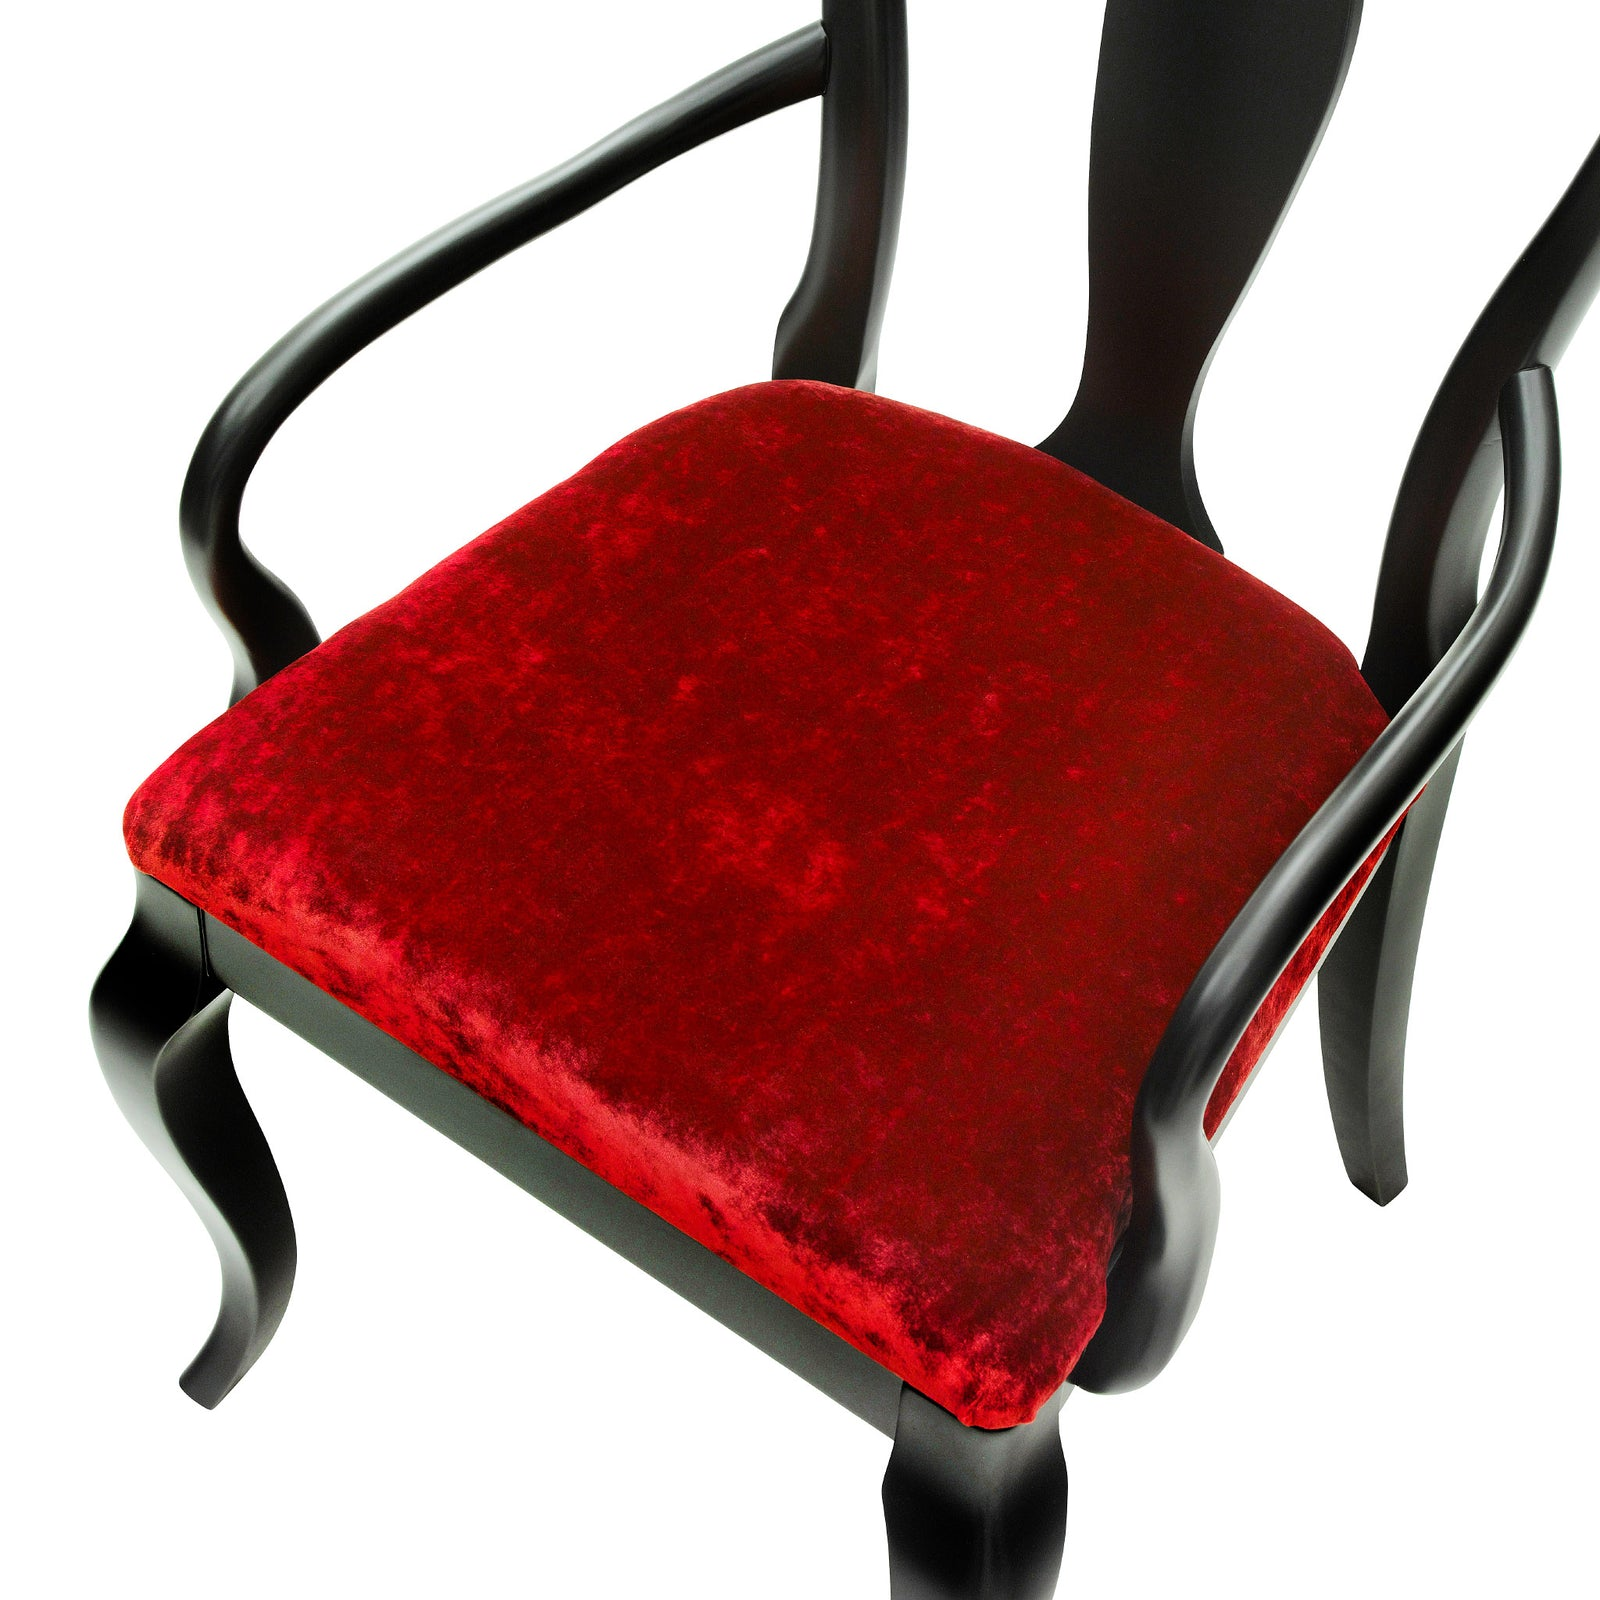 Art Deco style chairs upholstered in sumptuous red velvet